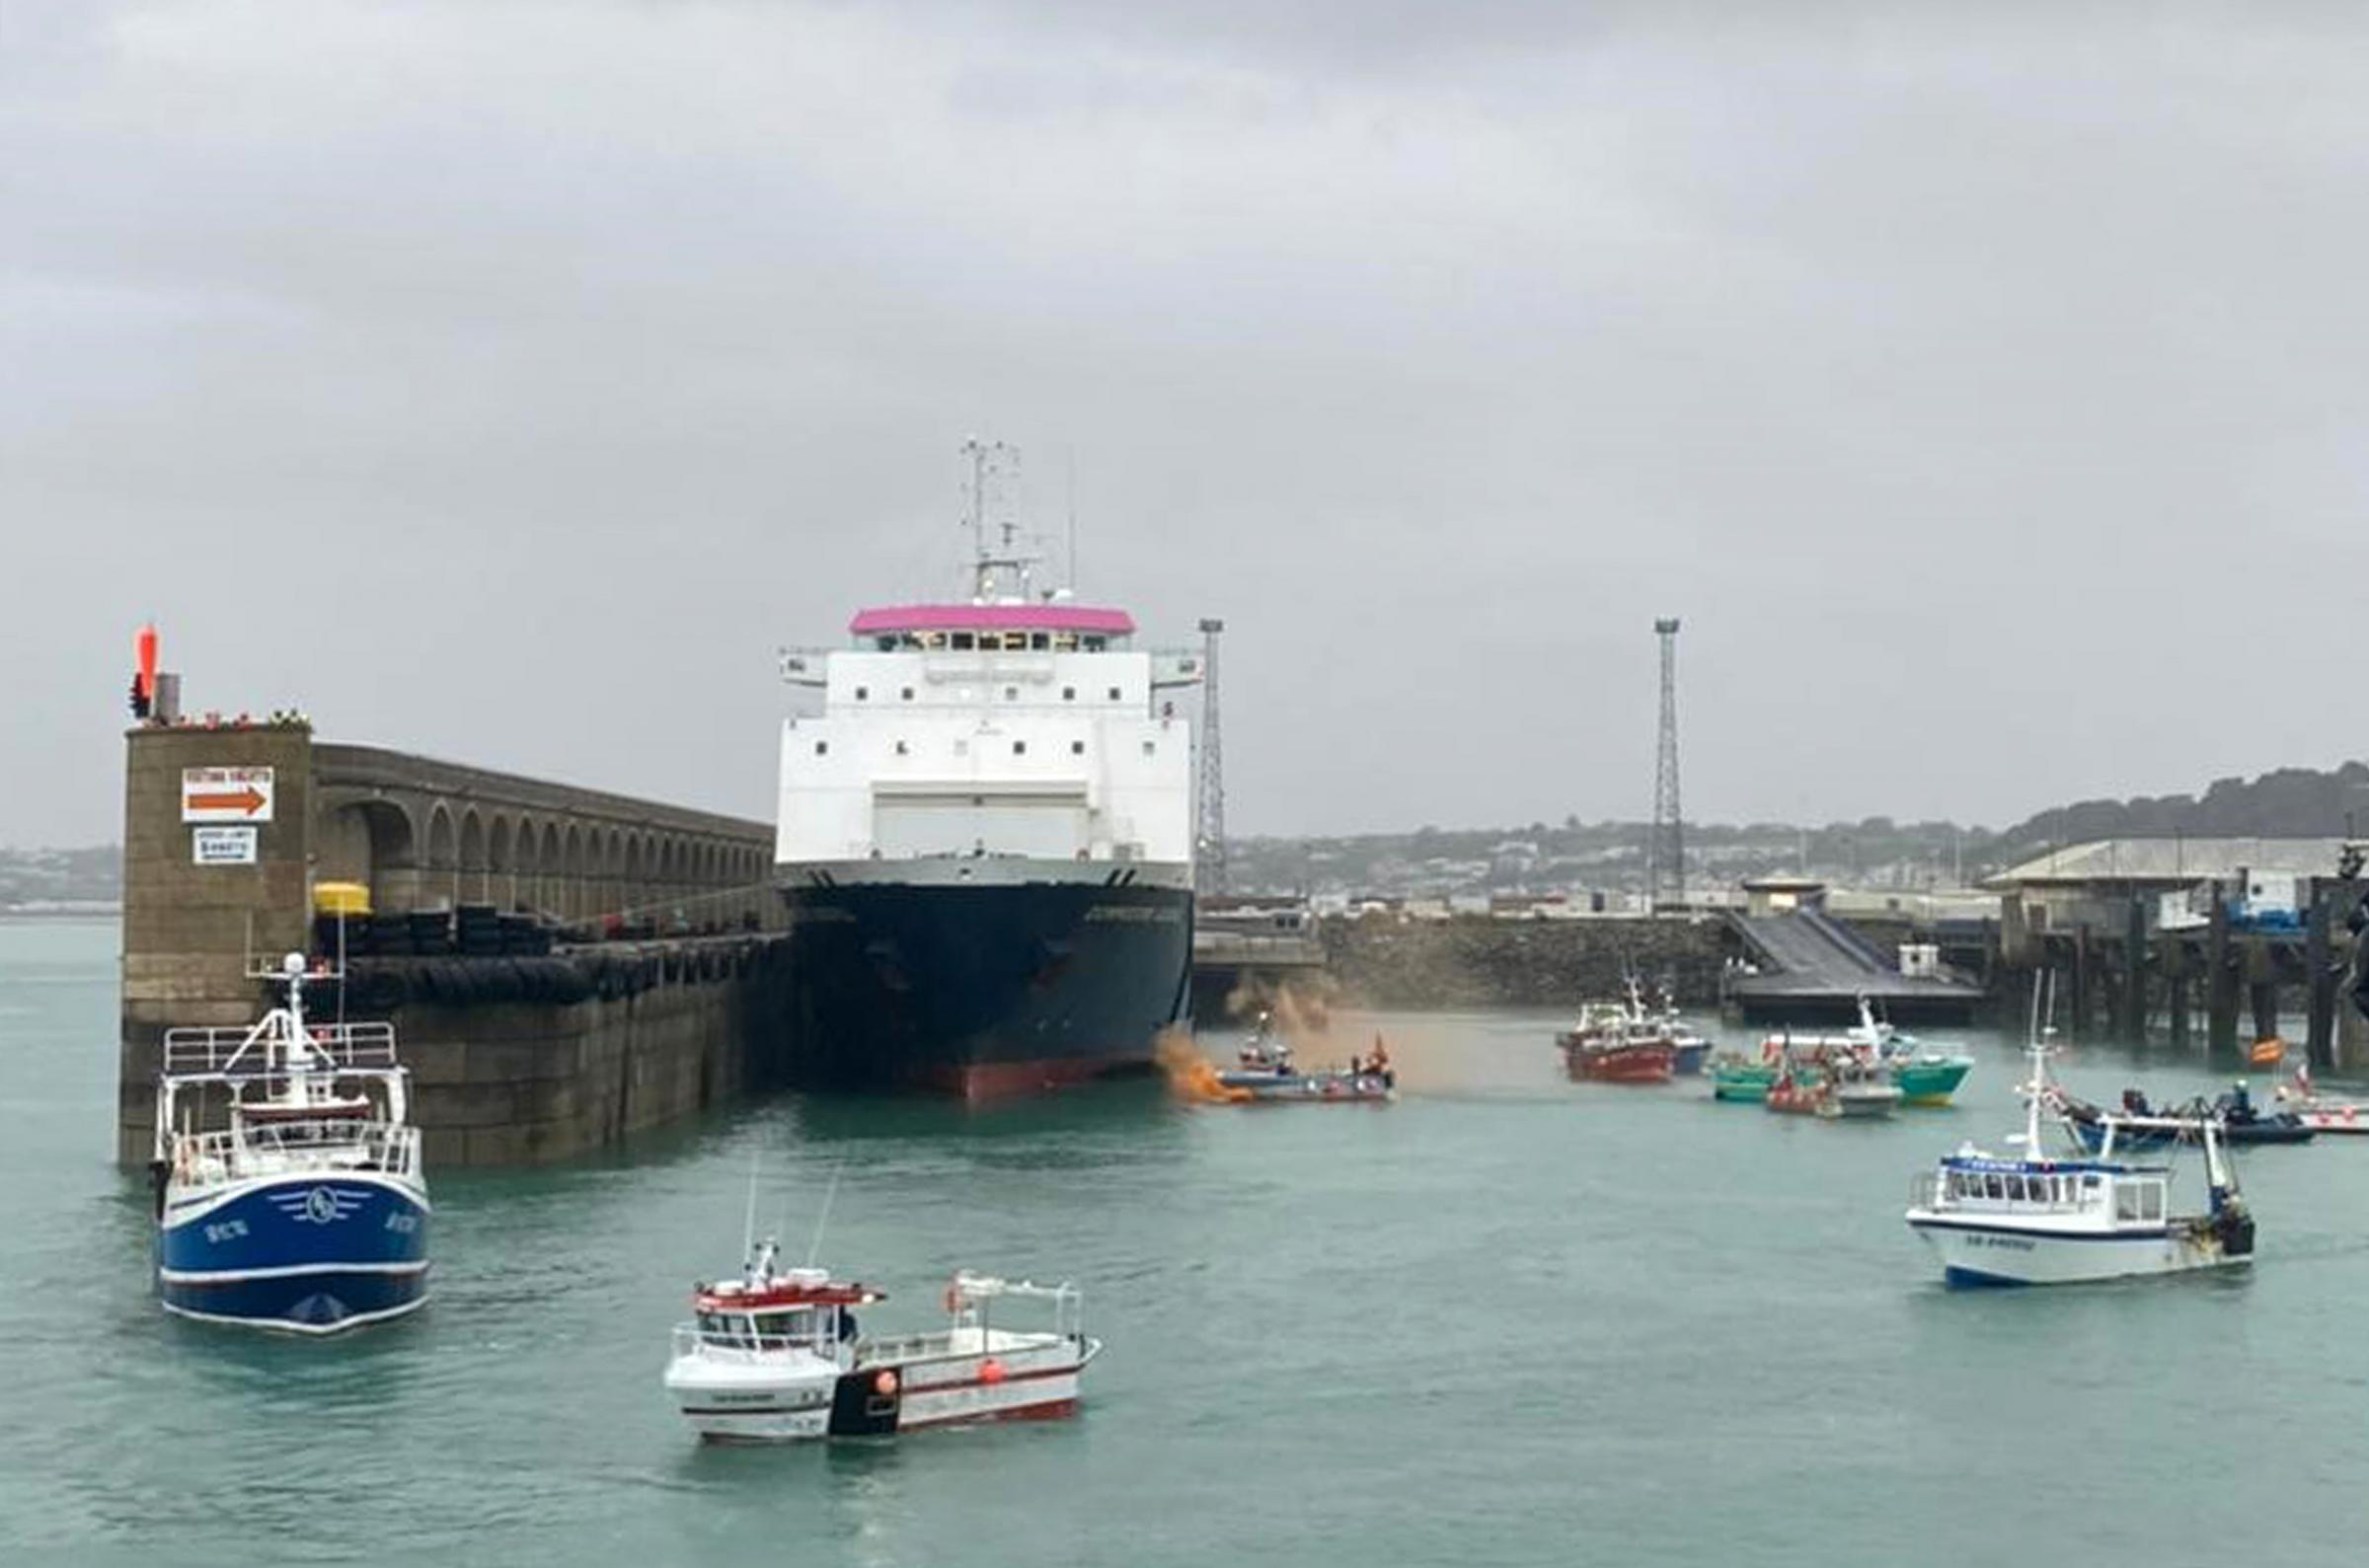 France sends police patrol boats to Jersey as Brexit fisheries tensions rise